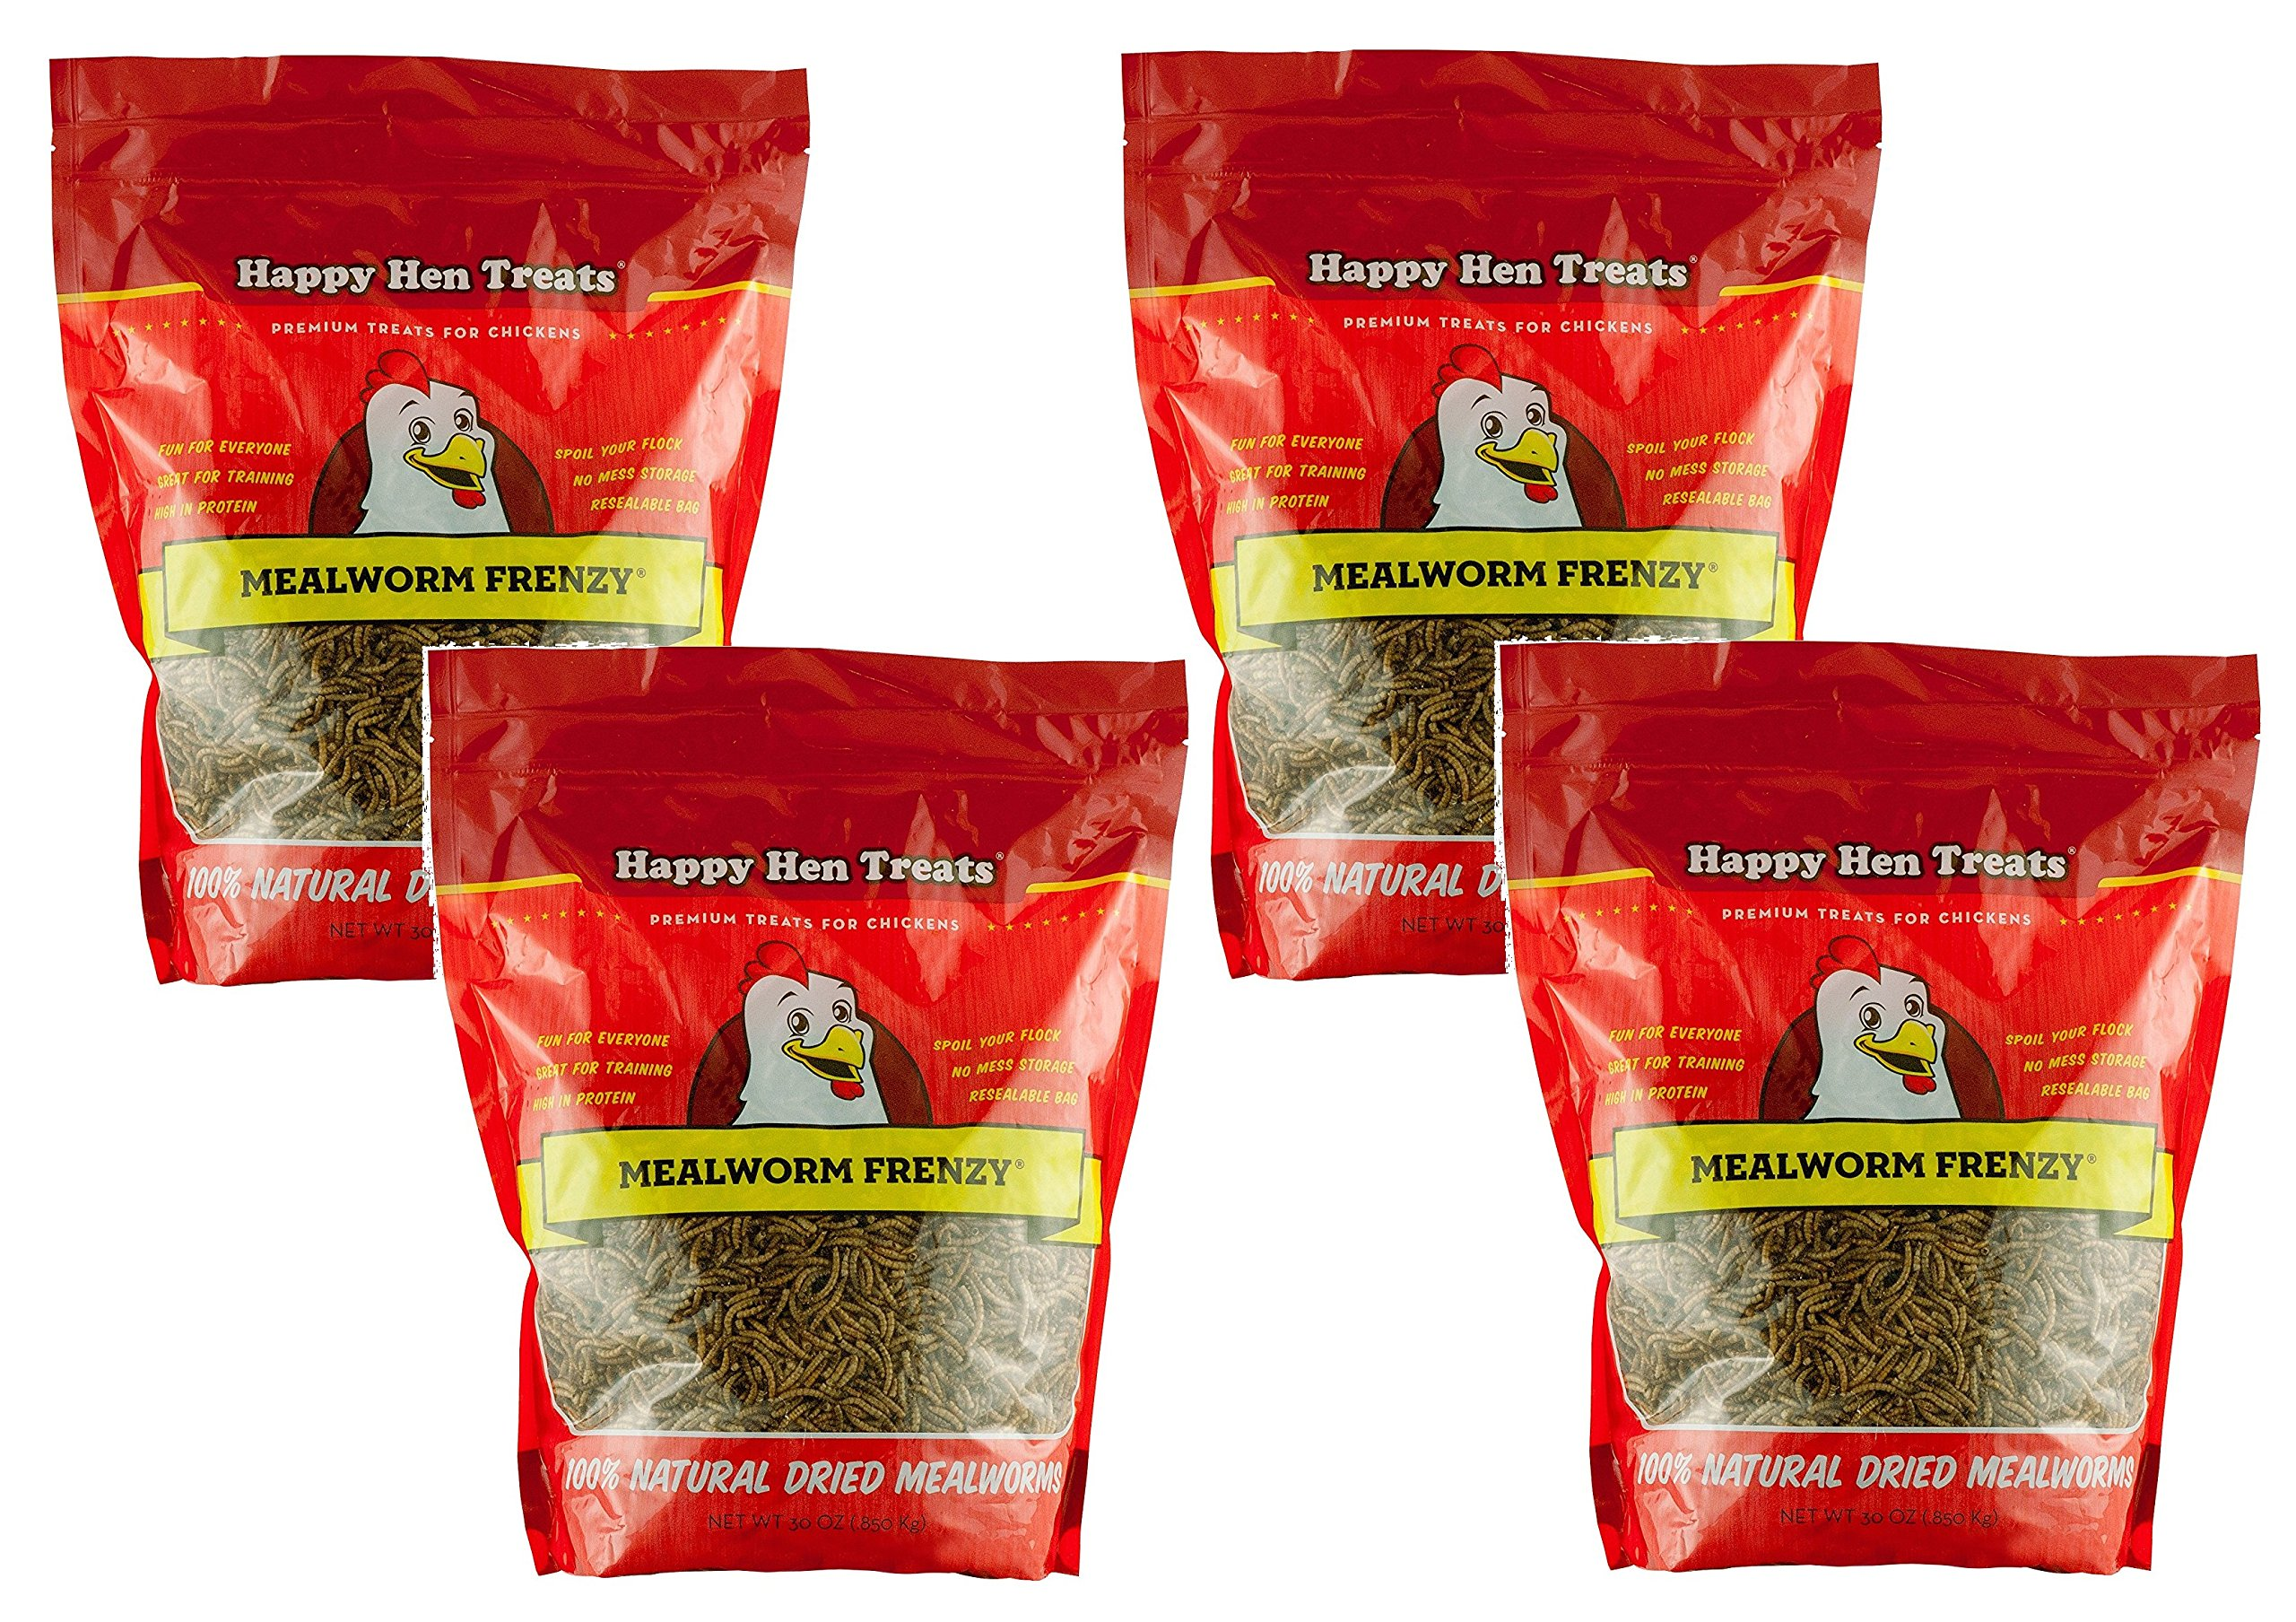 (4 Pack) Happy Hen Treats Mealworm Frenzy, 30-Ounces each by Happy Hen Treats